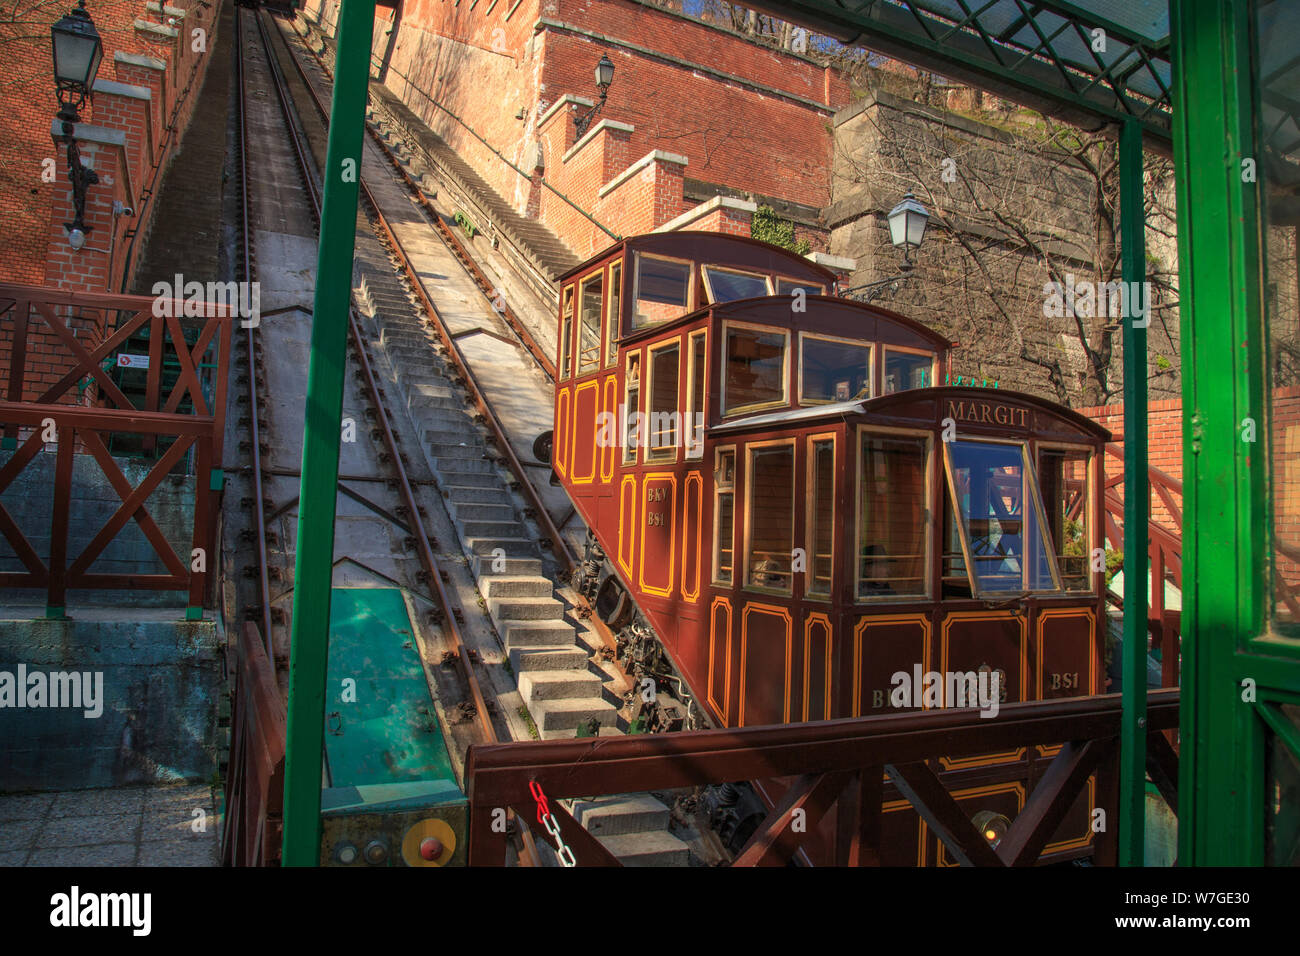 Budapest, Hungary, March 22 2018: Budapest Castle Hill Funicular. Hungary. Vintage carriages are at the last stop. Stock Photo